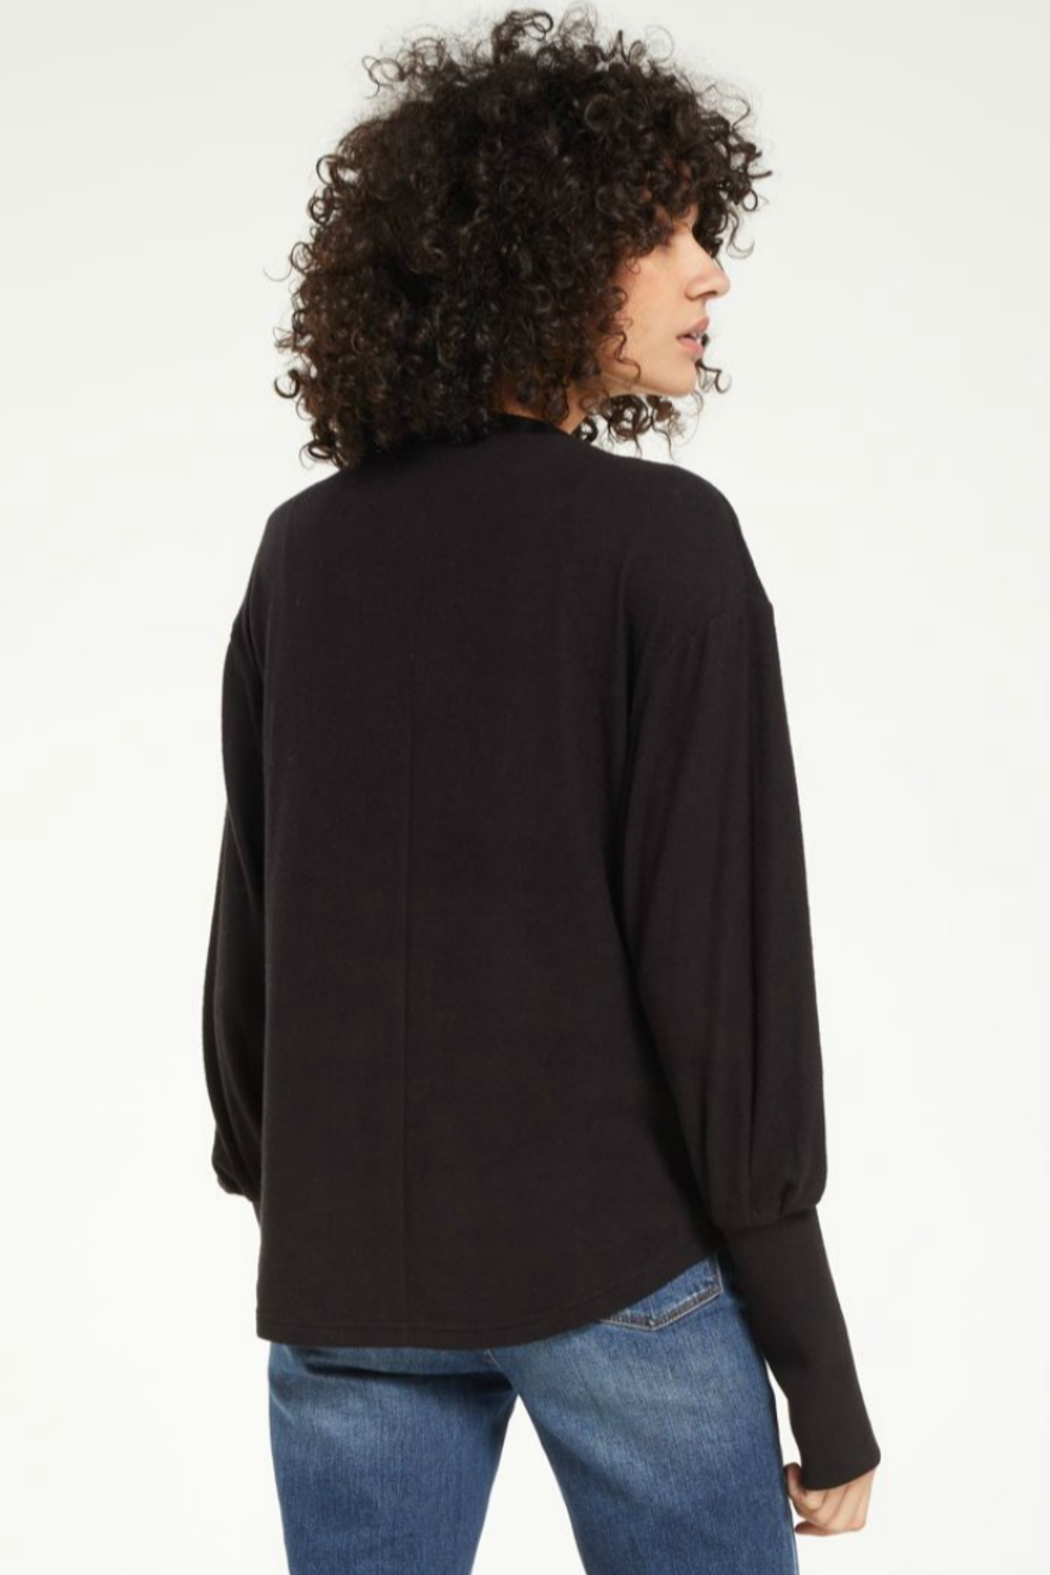 z supply Vada Marled Top - Side Cropped Image